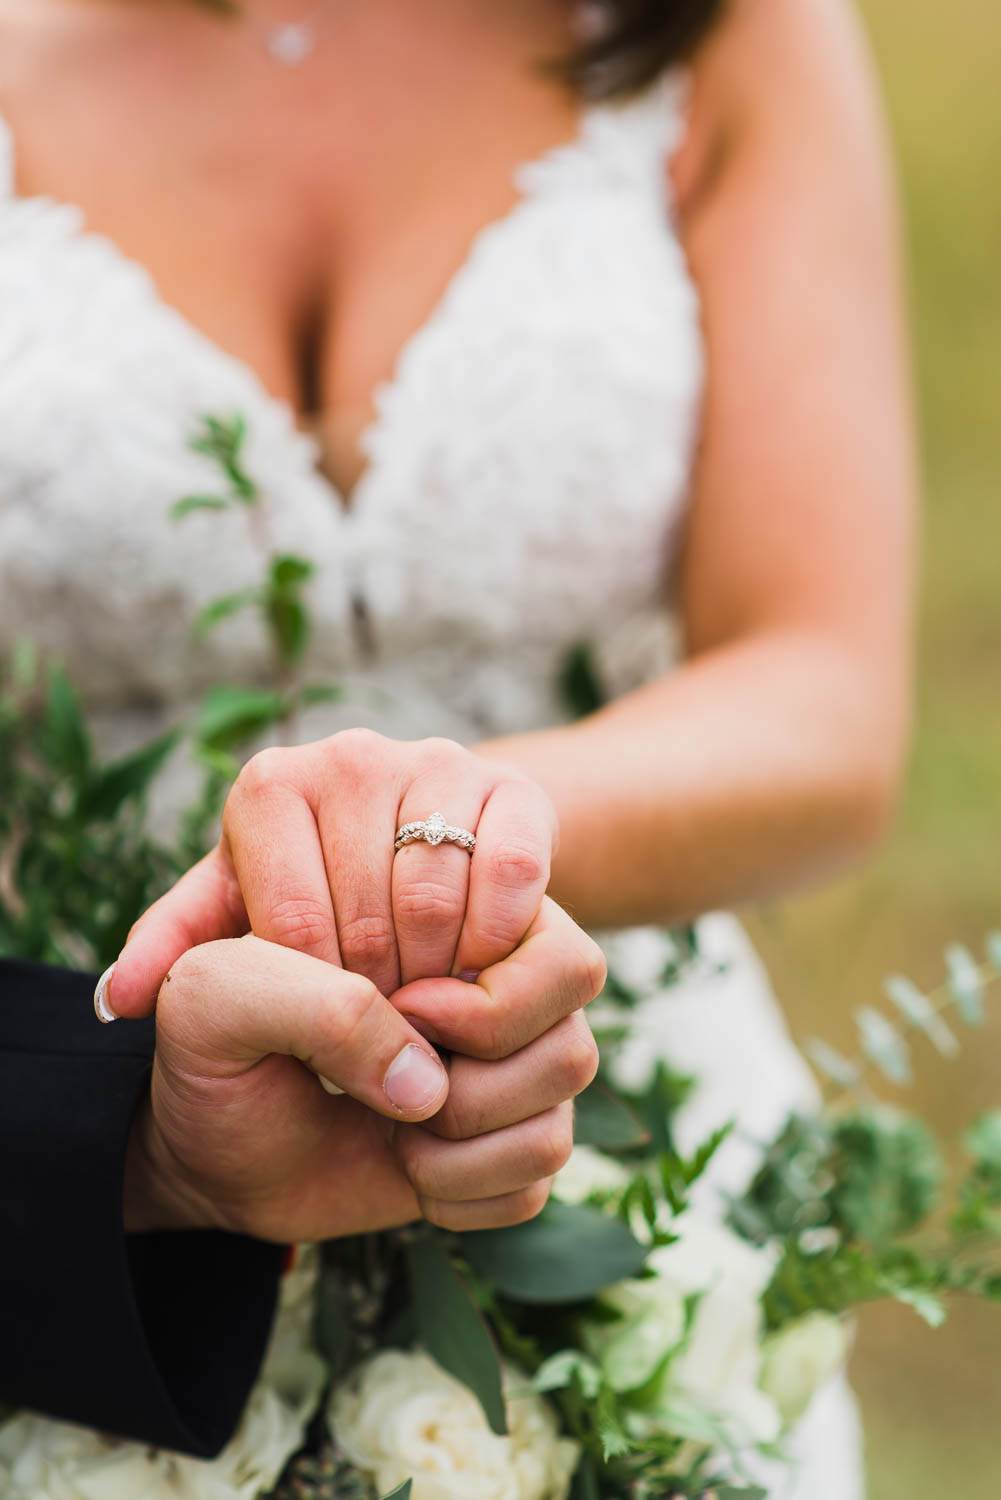 hands and wedding ring